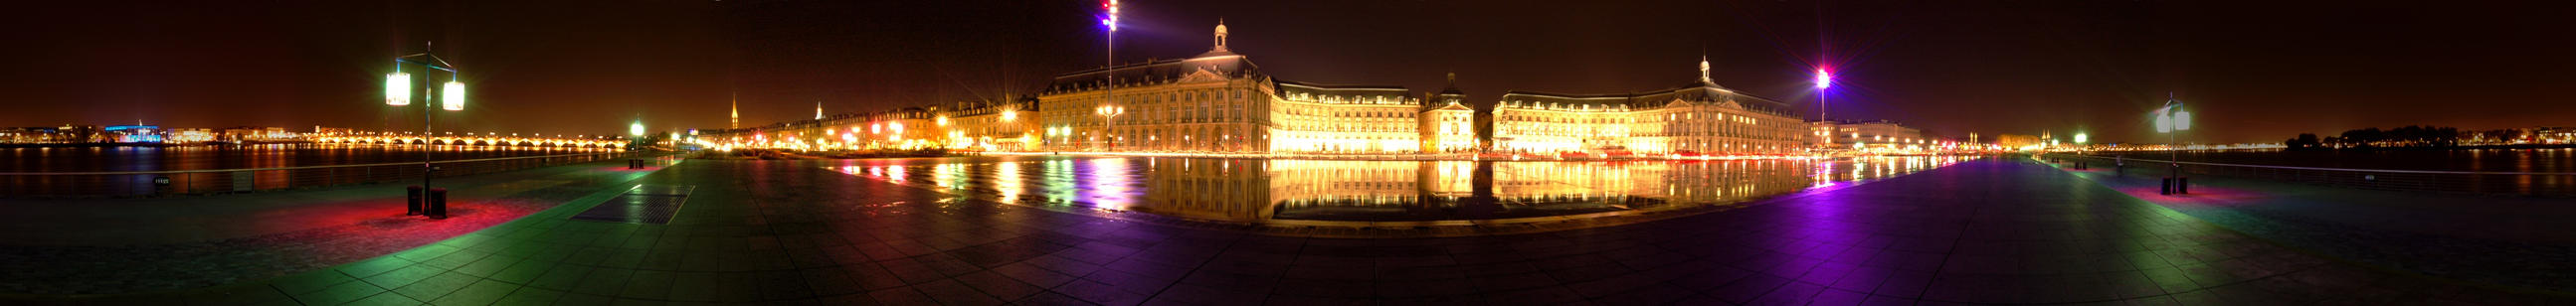 Panoramic : Place de la Bourse by frodrigo